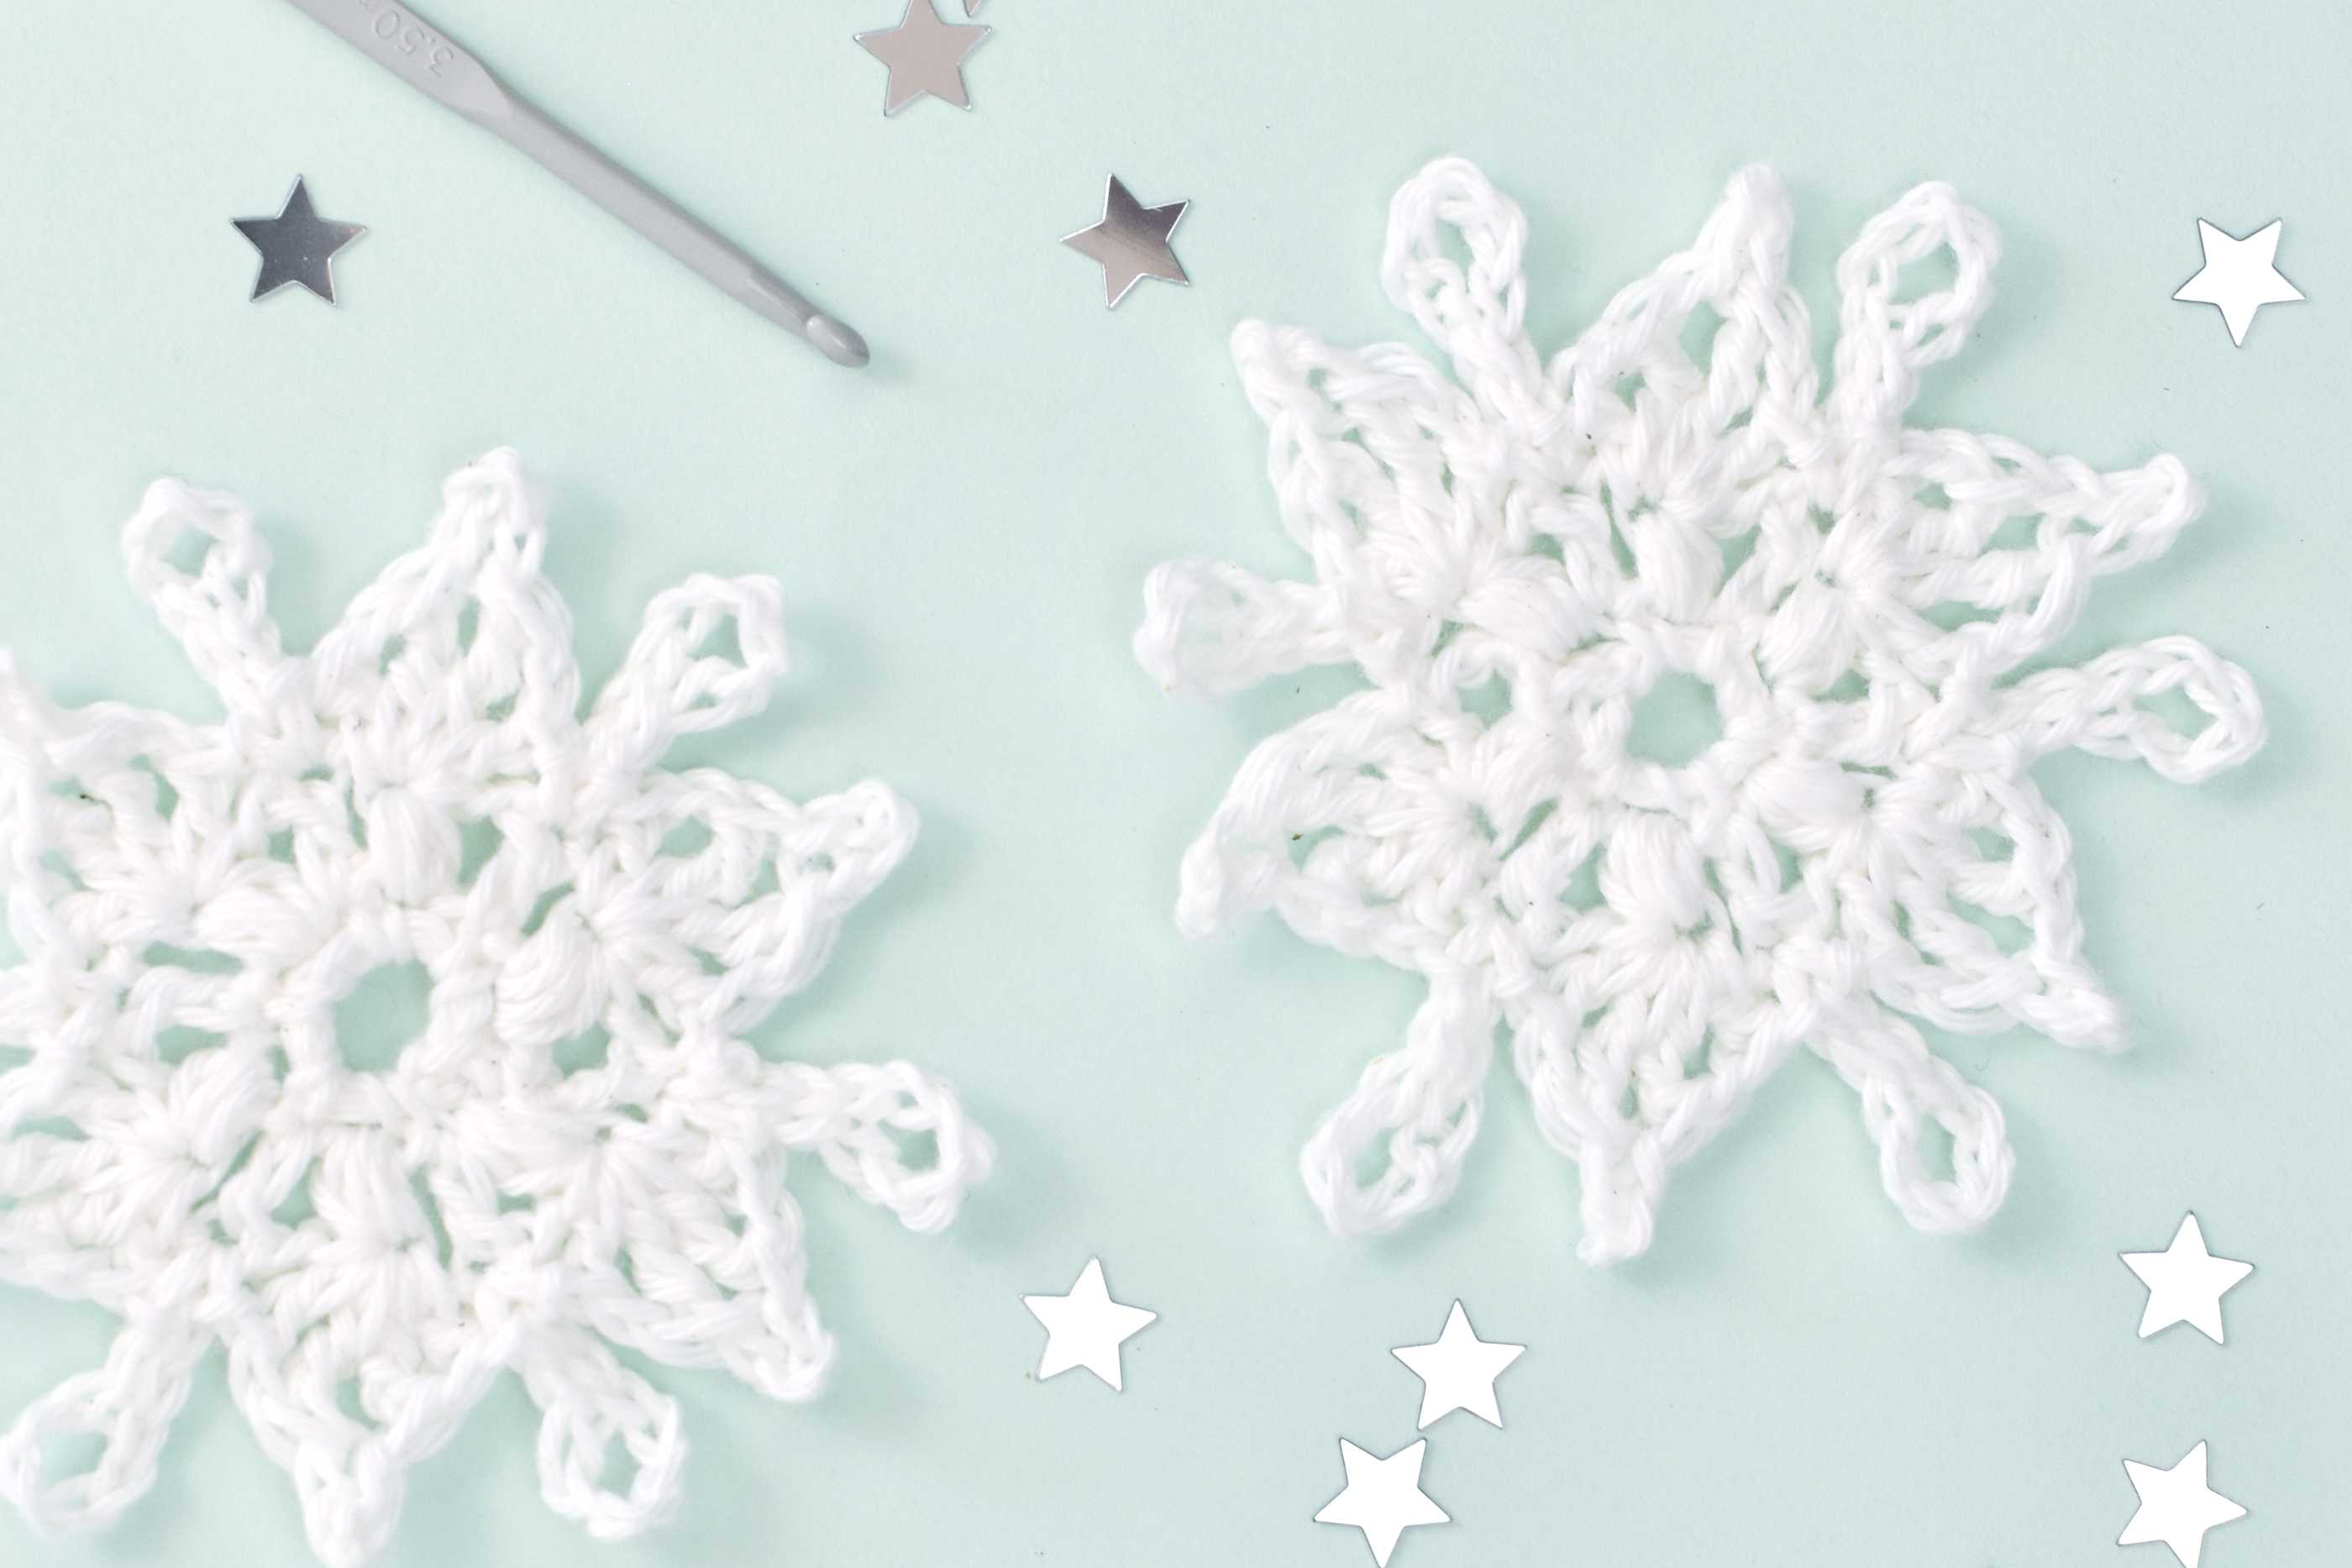 Decorate with Crochet Snowflakes